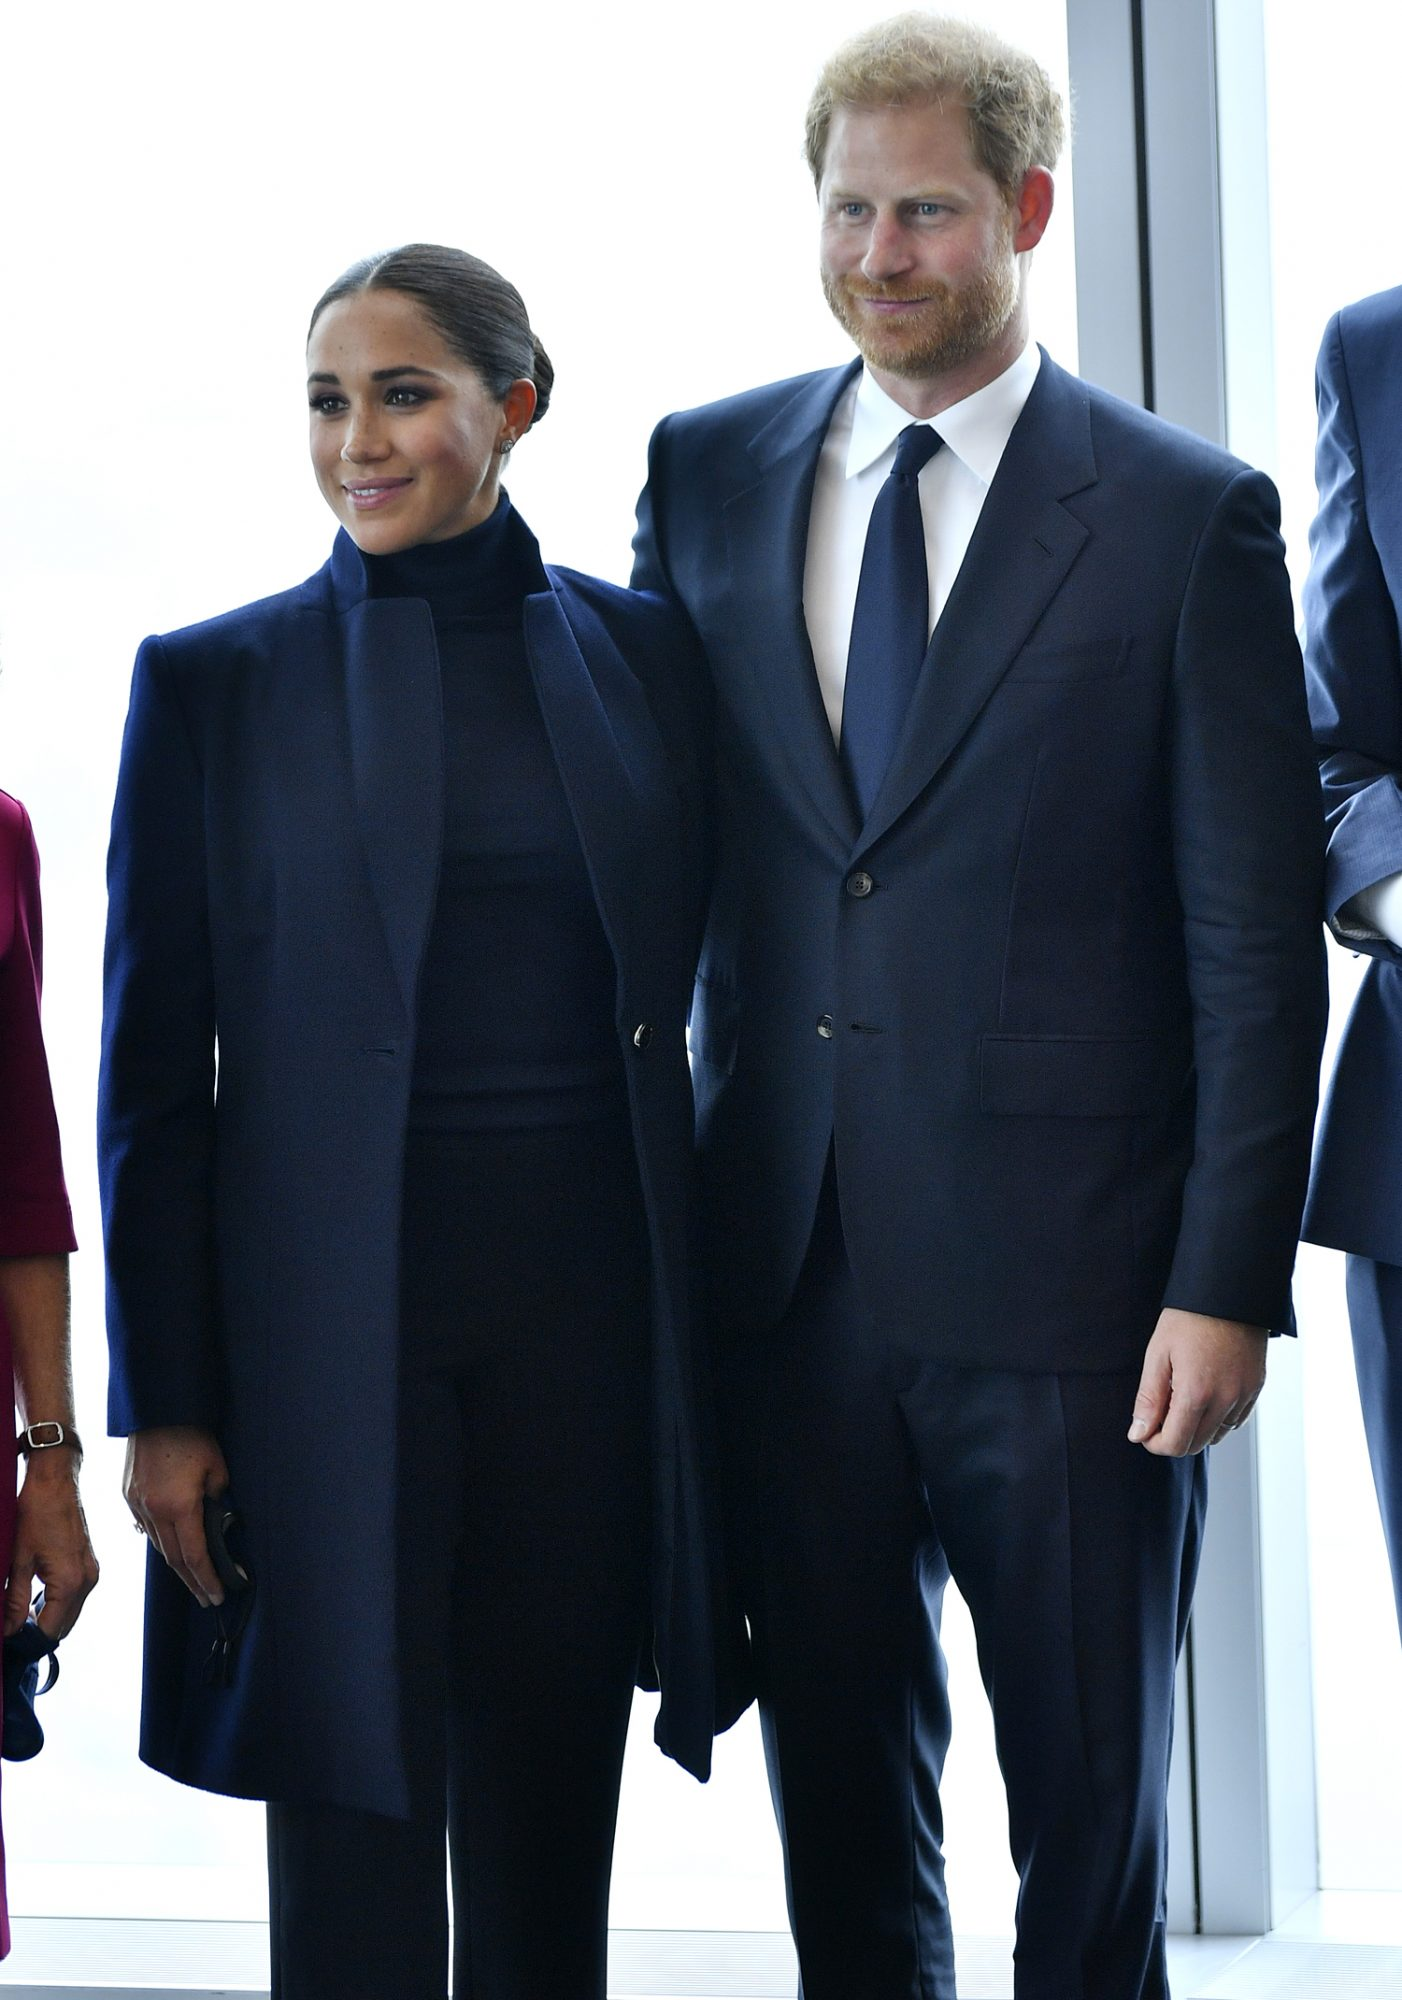 The Duke And Duchess Of Sussex Visit One World Observatory